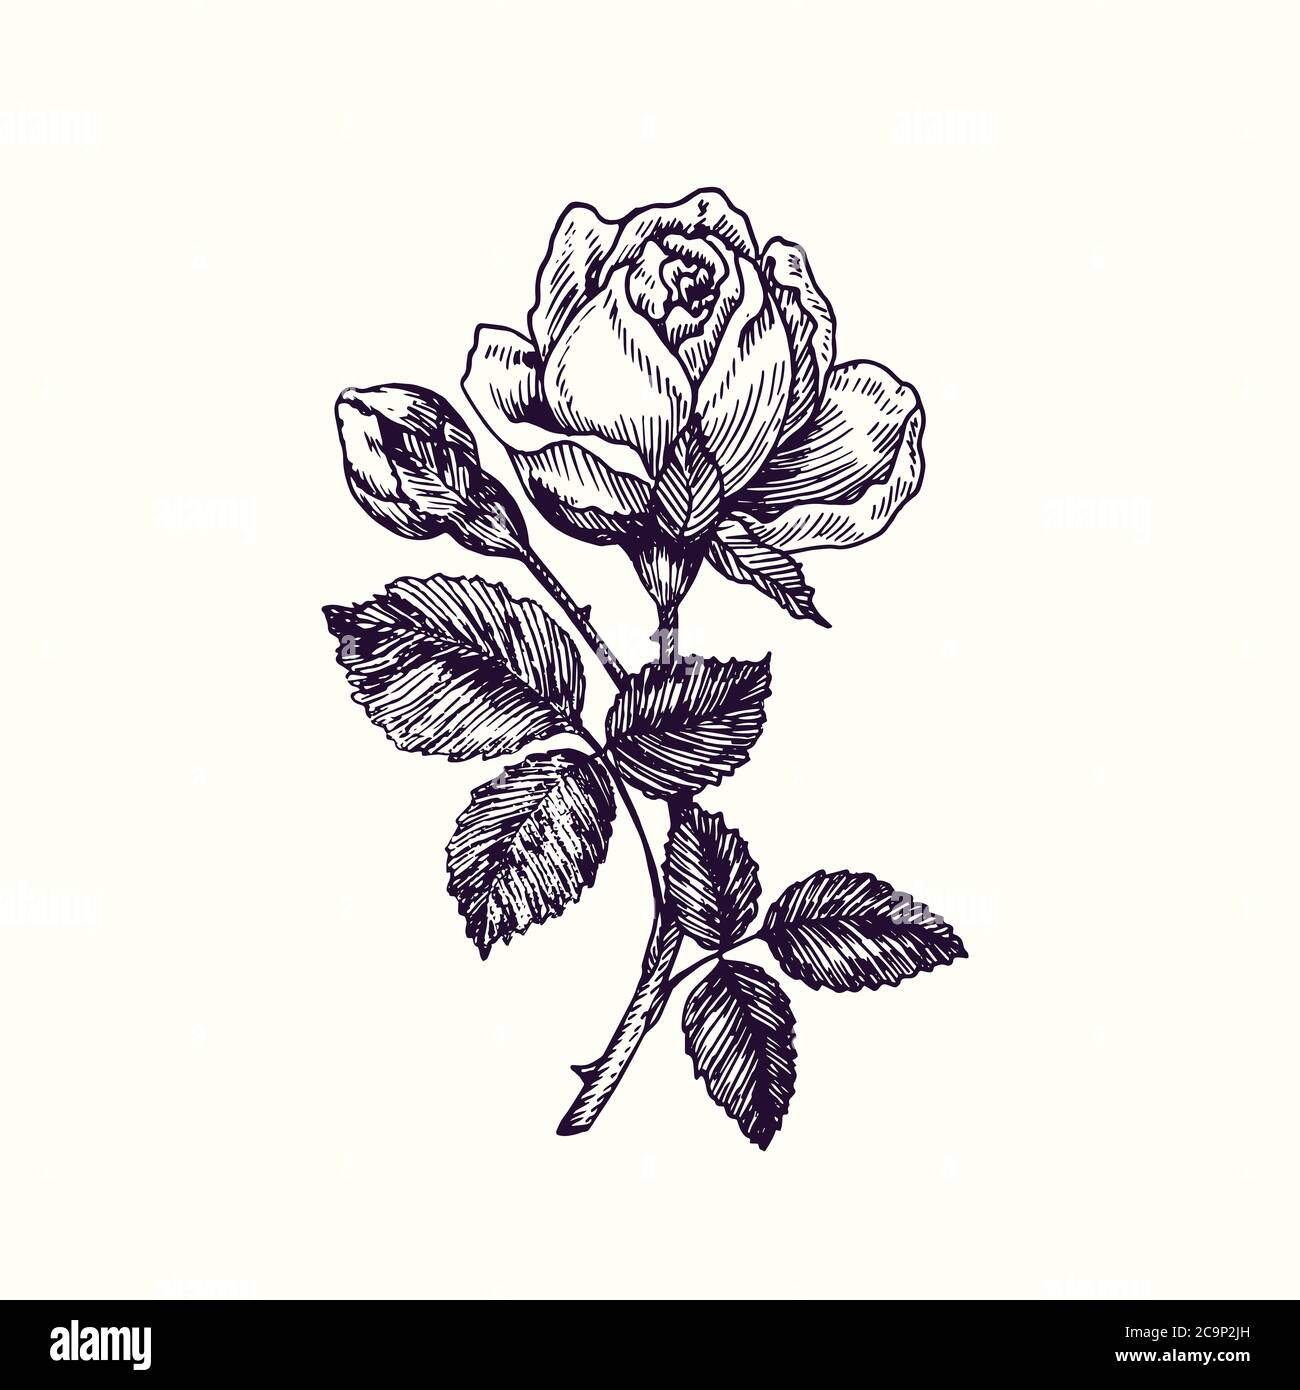 Rose Flower Stem With Thorns Leaves And Blosom Hand Drawn Doodle Drawing In Gravure Style Sketch Illustration Design Element Stock Photo Alamy